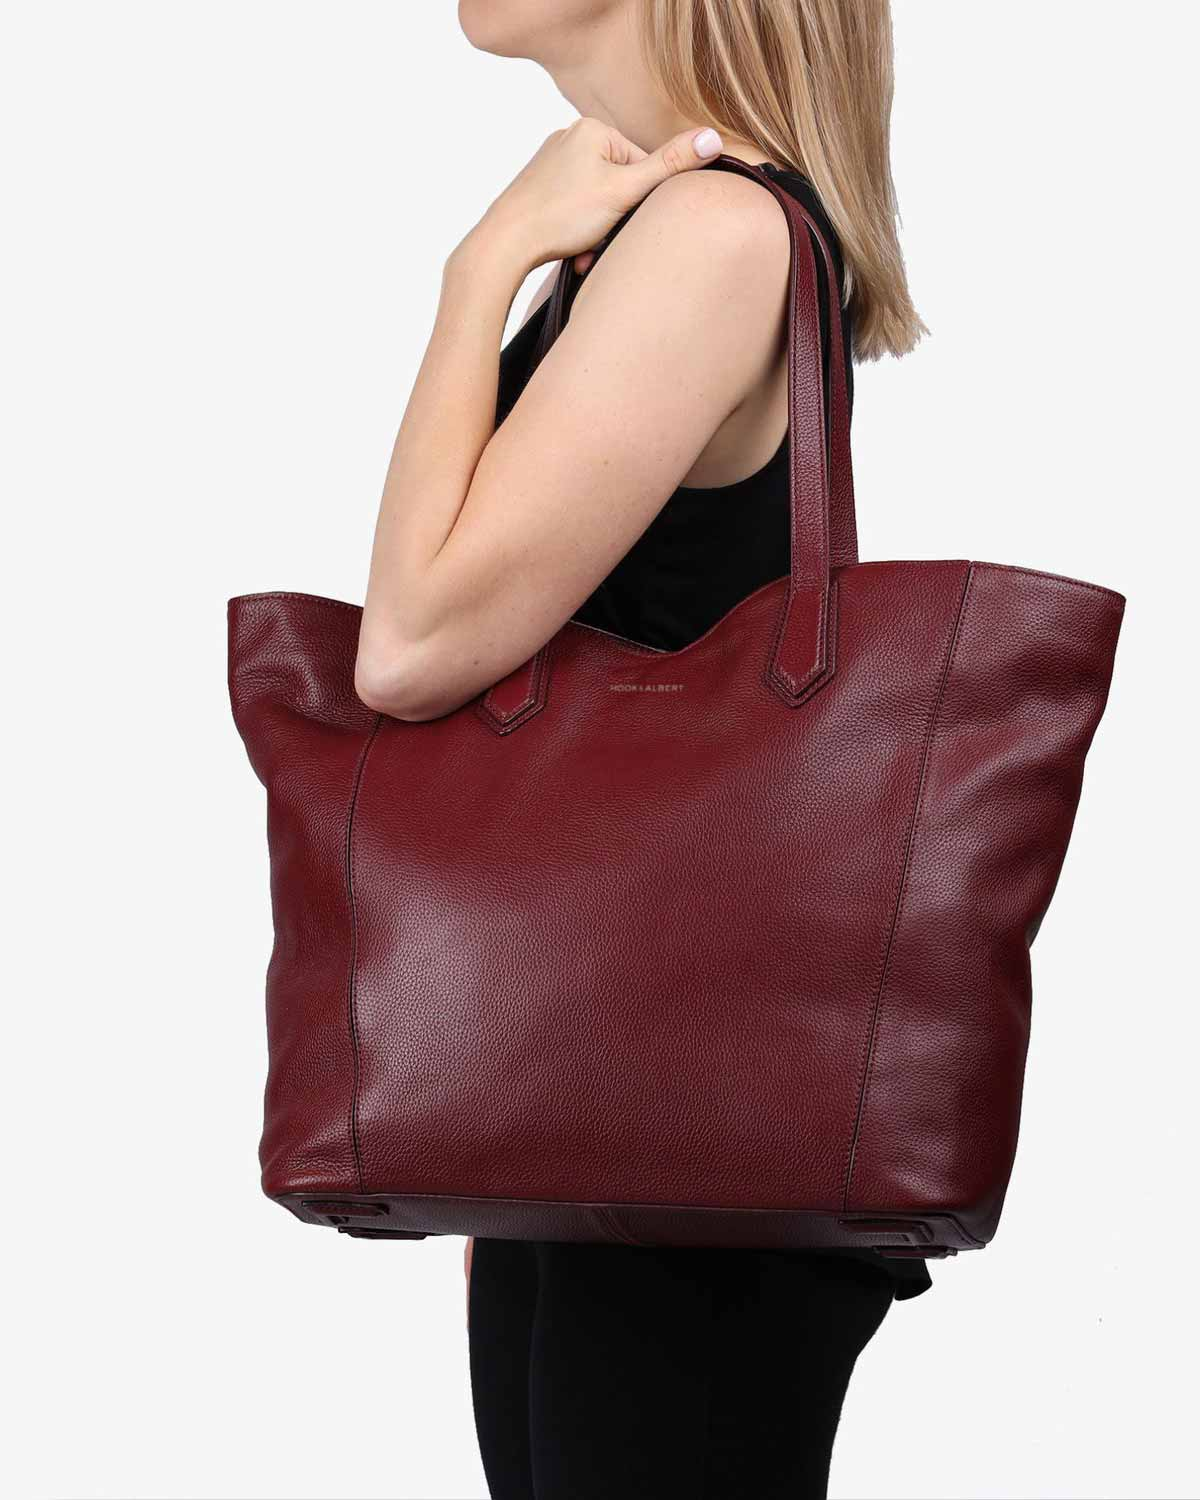 Bordeaux Leather Zippered Tote Bag